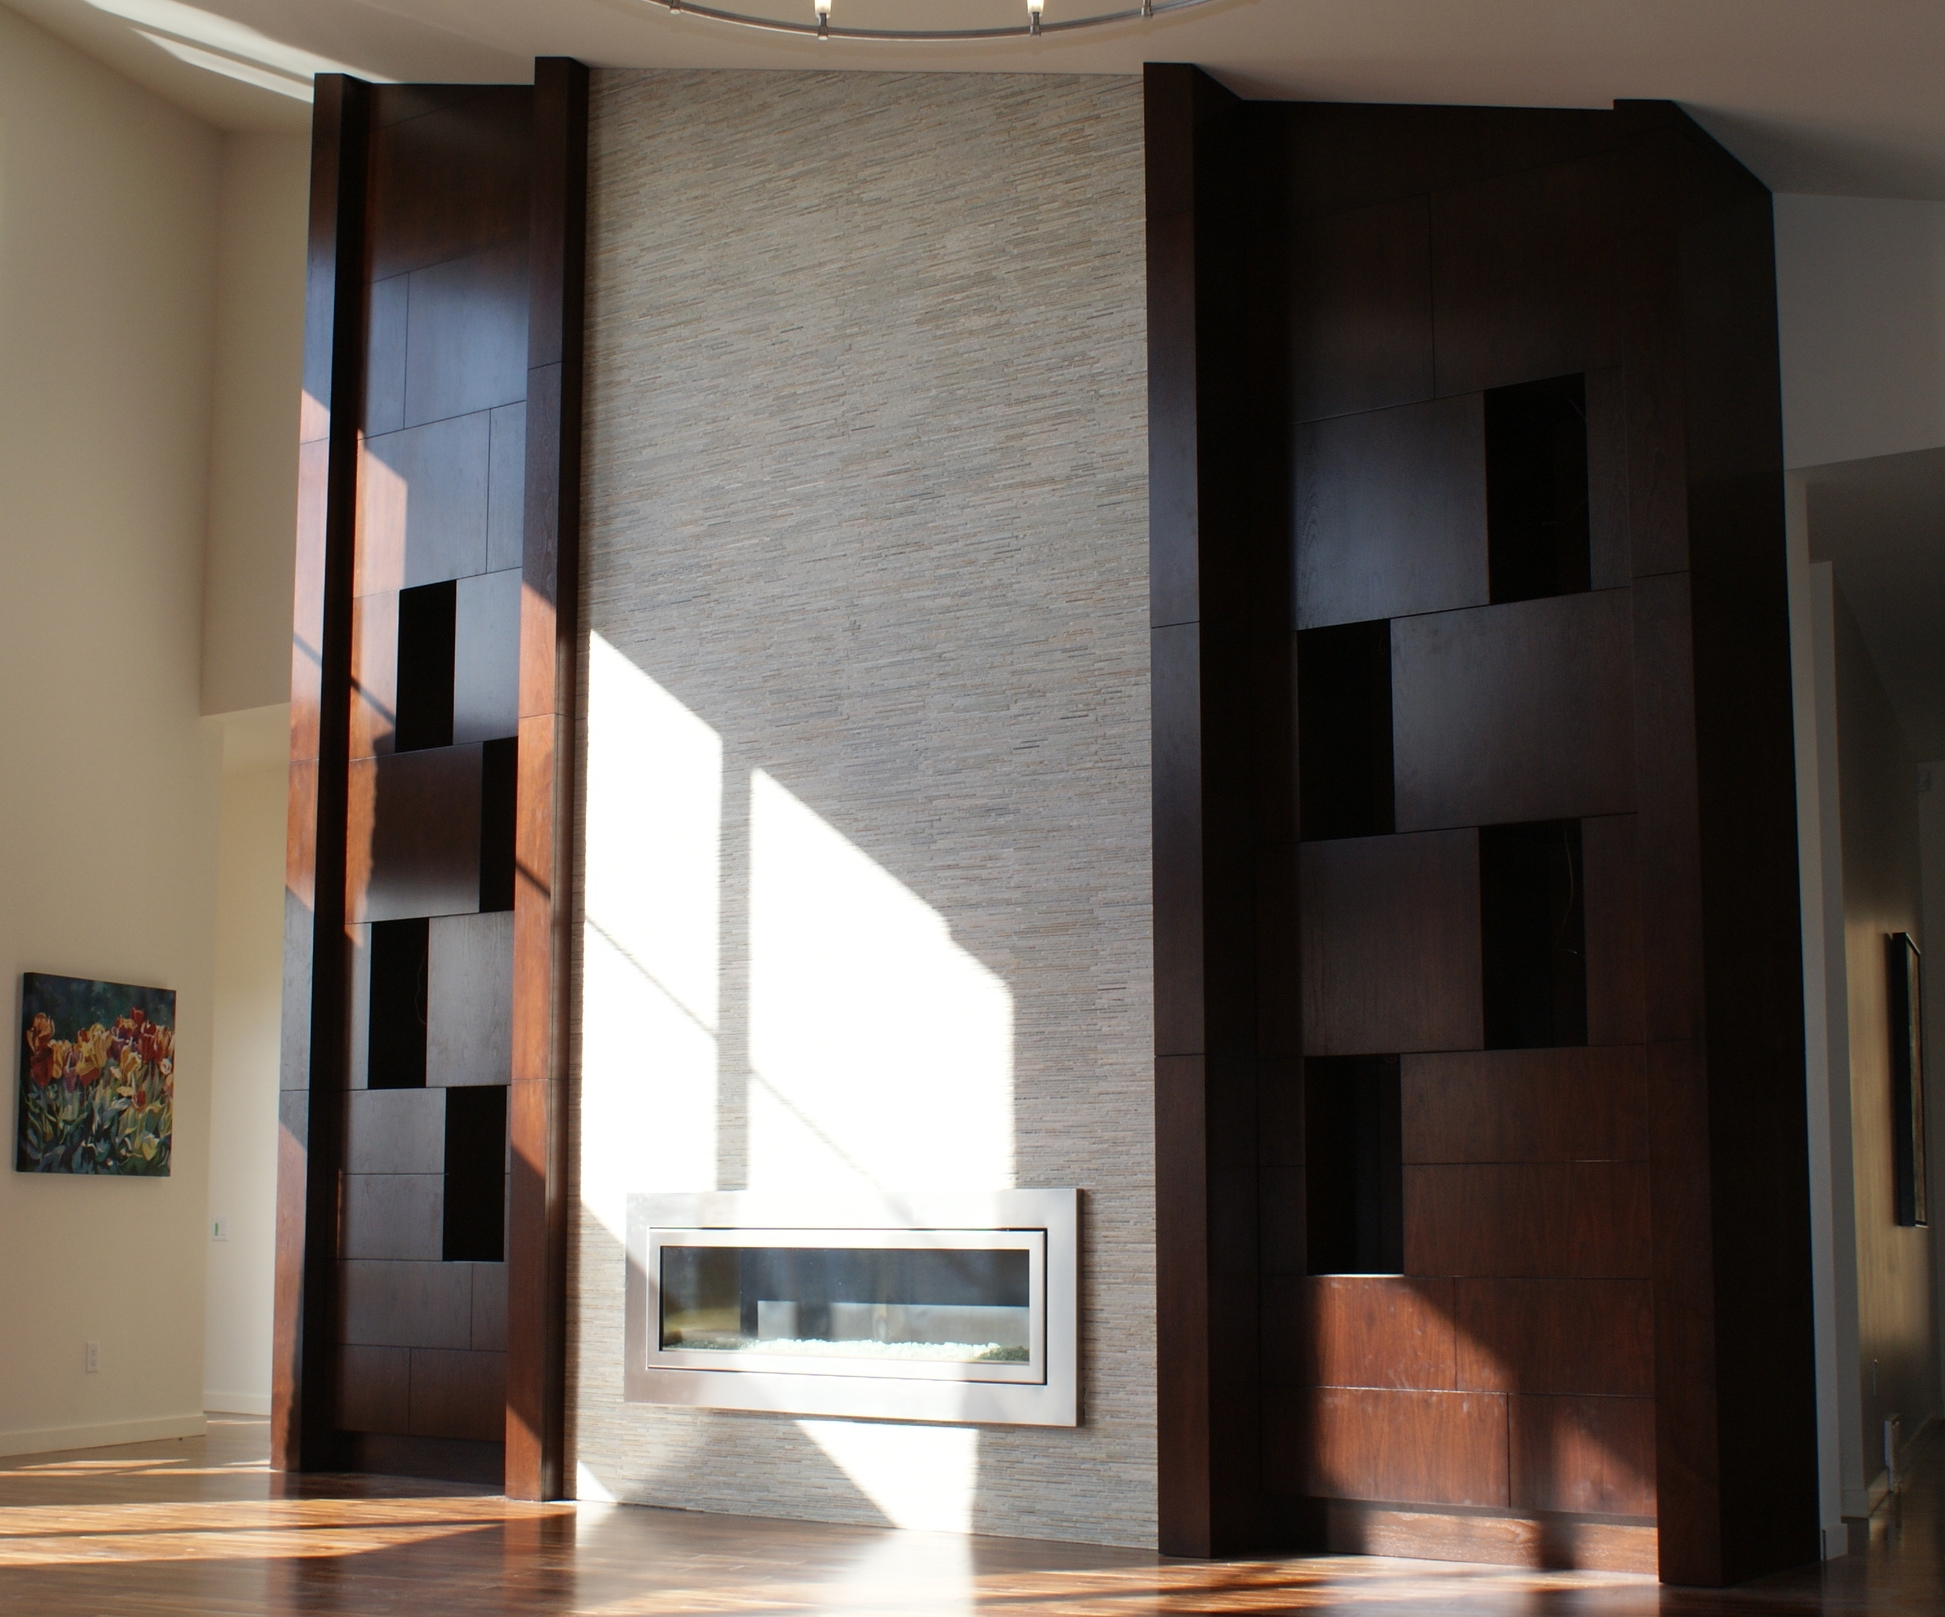 custom-designed-fire-side-cabinetry-with-display-niches.JPG